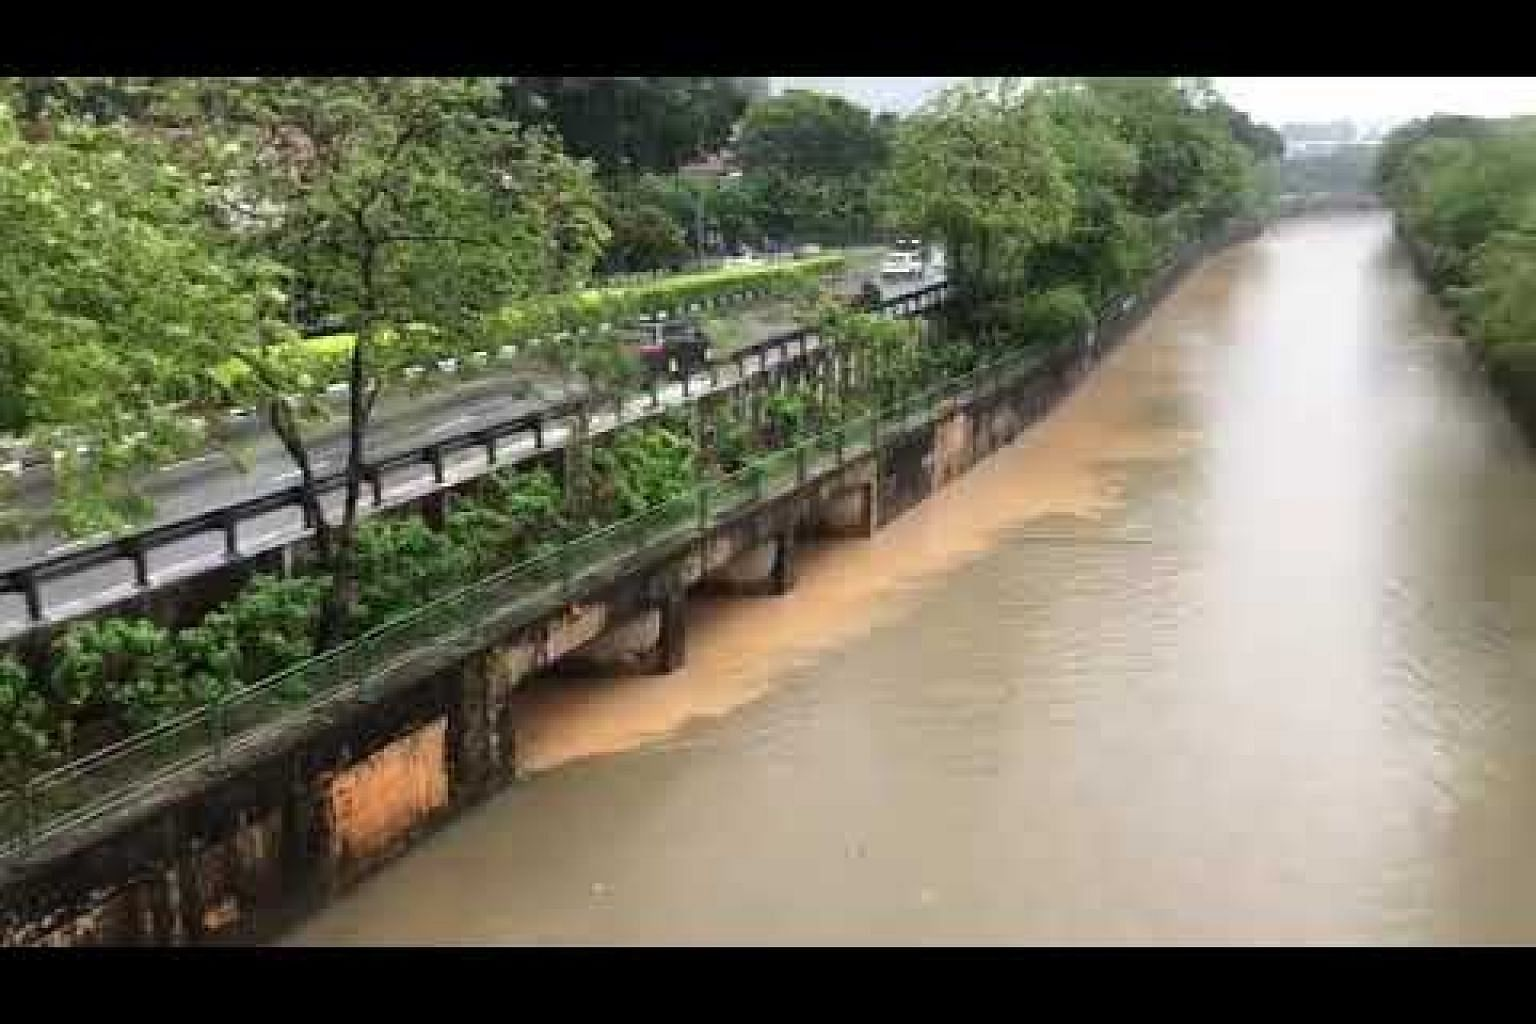 Silt in Bukit Timah Canal